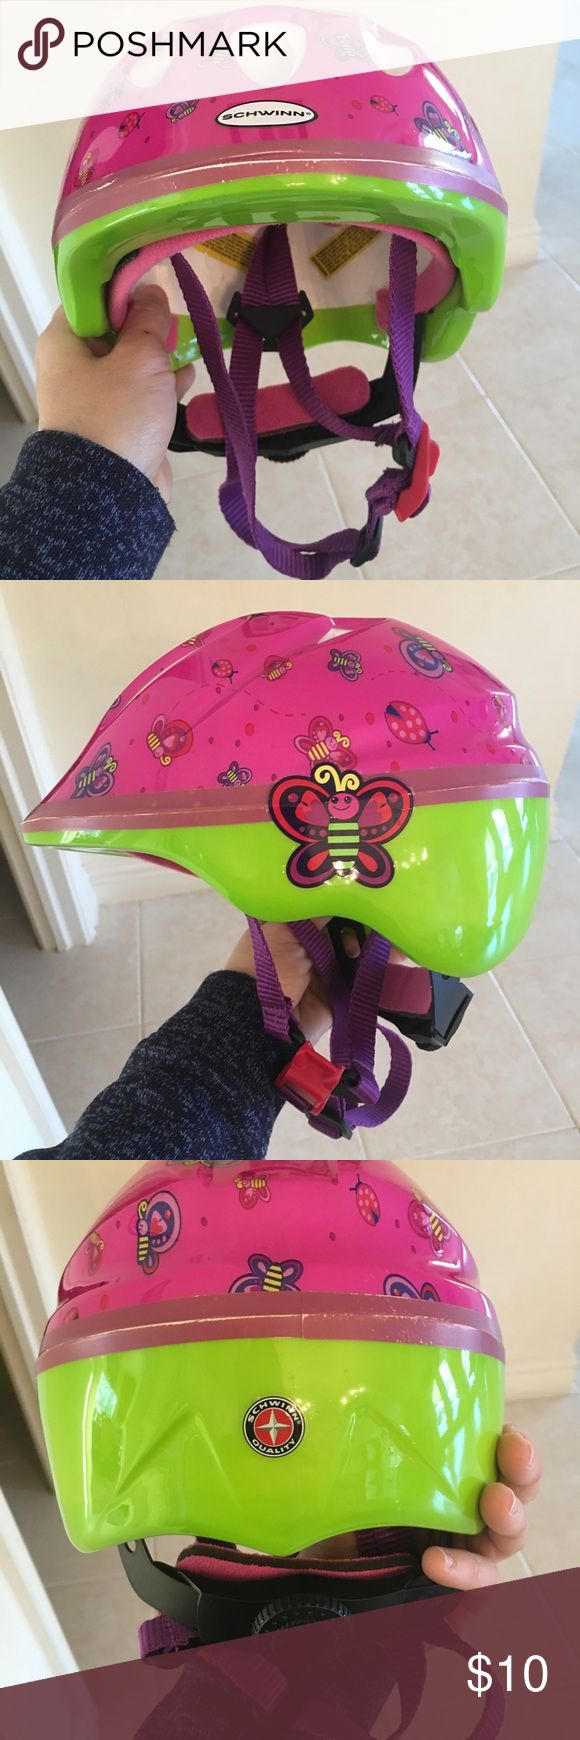 Schwinn infant/ toddler bike helmet Schwinn bicycle pack hemet. 360 dial fit (Adjustable) to fit child's head size. Vents in the outer shell help to keep head cool and safe. Great condition. Bright colors with butterflies print. My daughter wore this helmet from 8 months-3 years old. schwinn Accessories Hats